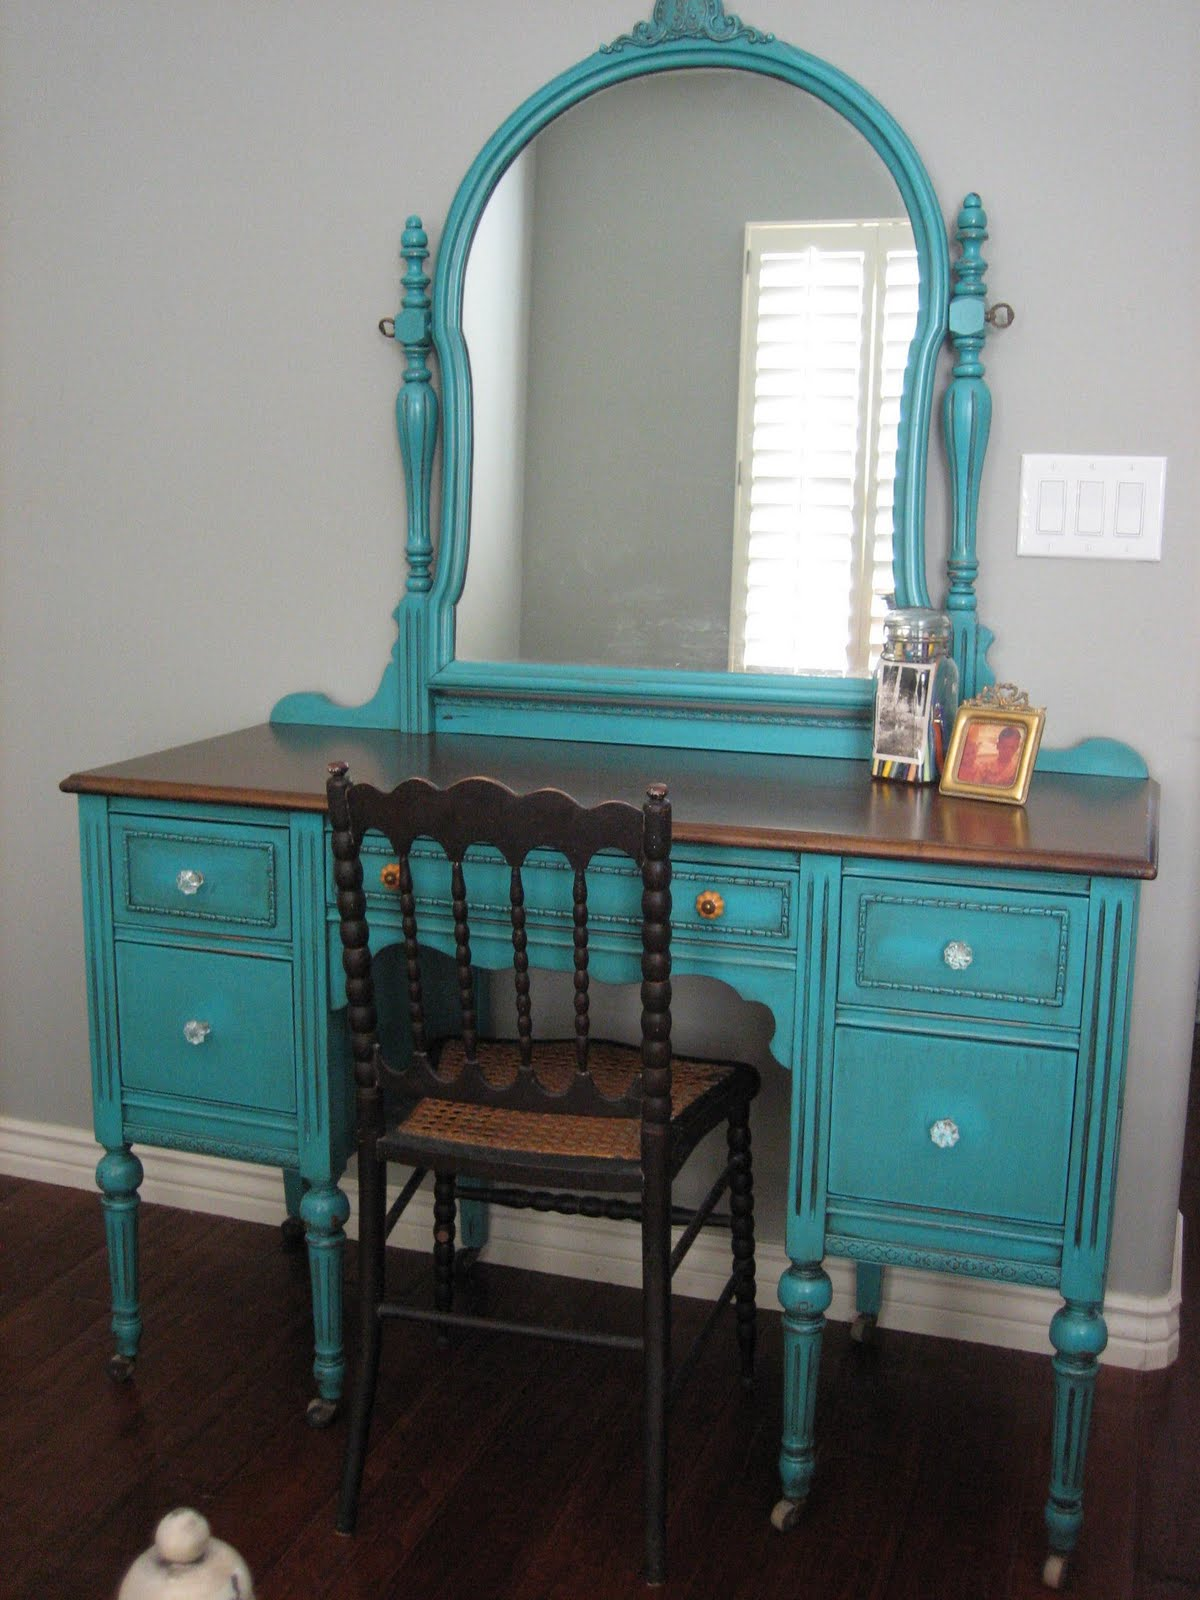 Turquoise Teal   Cream Bedroom Set. European Paint Finishes    Turquoise Teal   Cream Bedroom Set